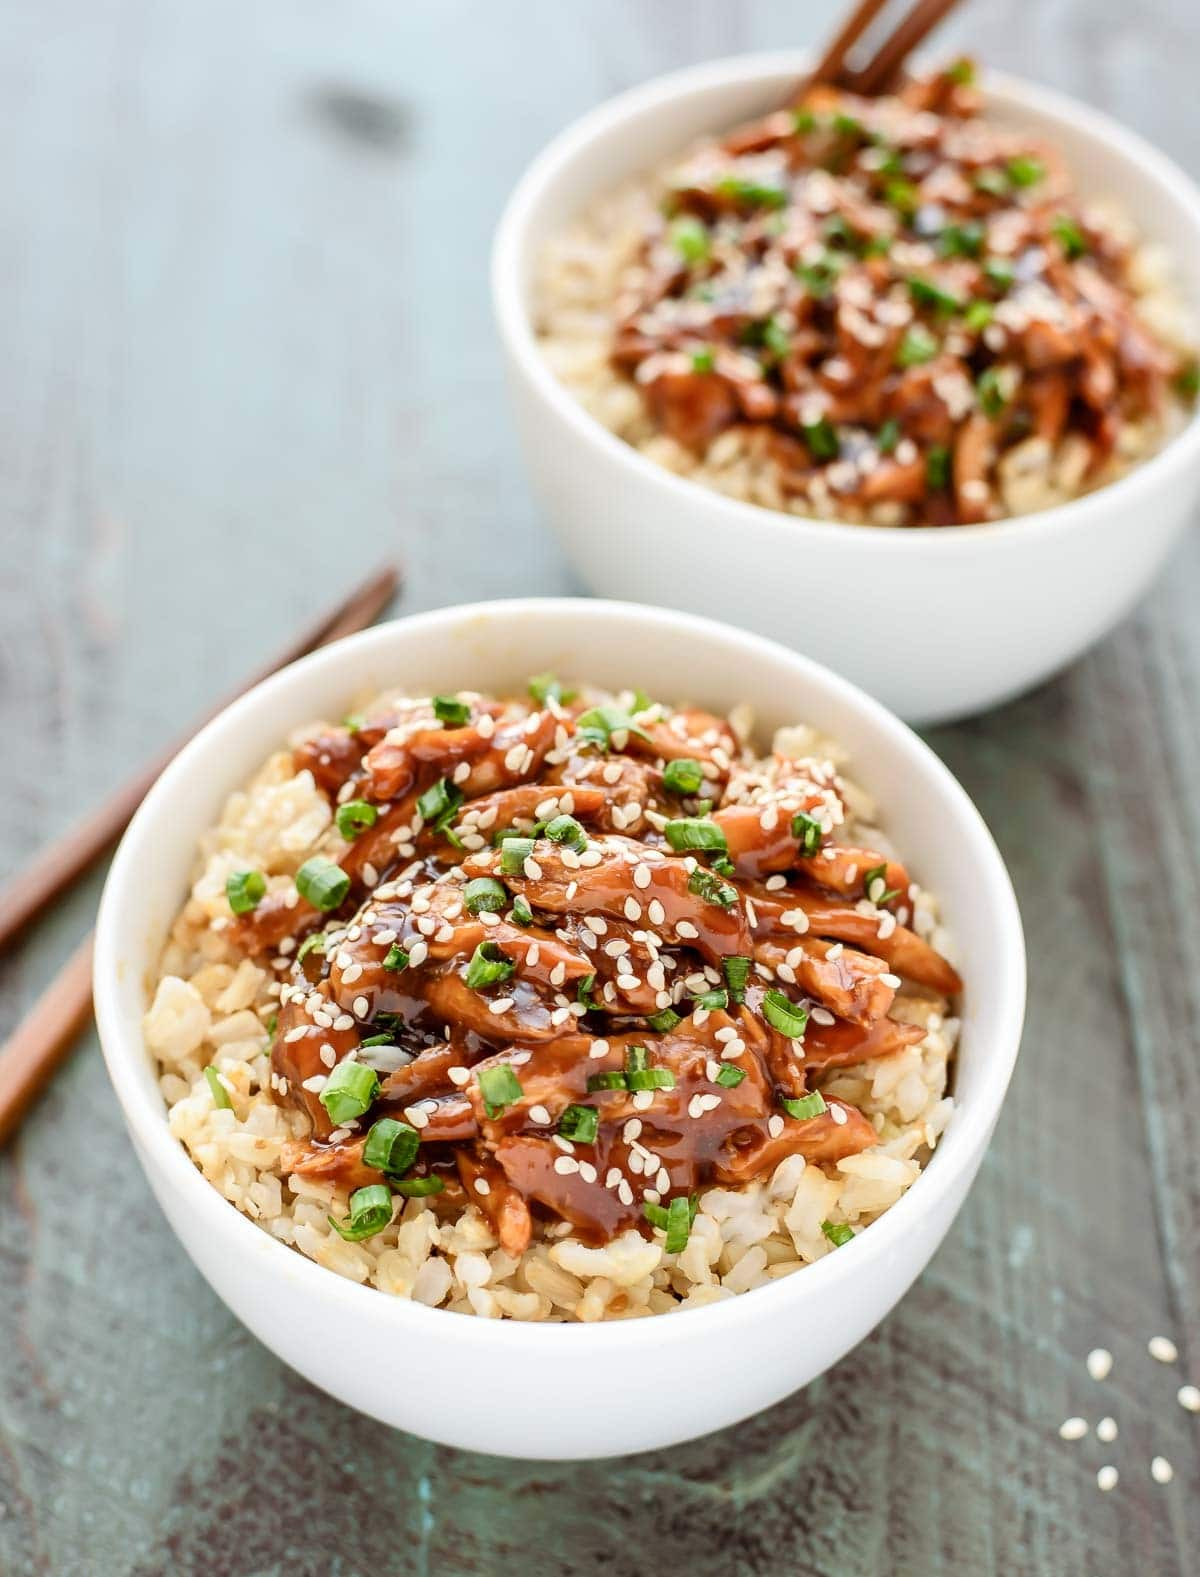 This slow cooker teriyaki chicken will make you think you are eating takeout! Less than 10 minutes to prep, healthy, and the honey teriyaki sauce is out of this world! @wellplated